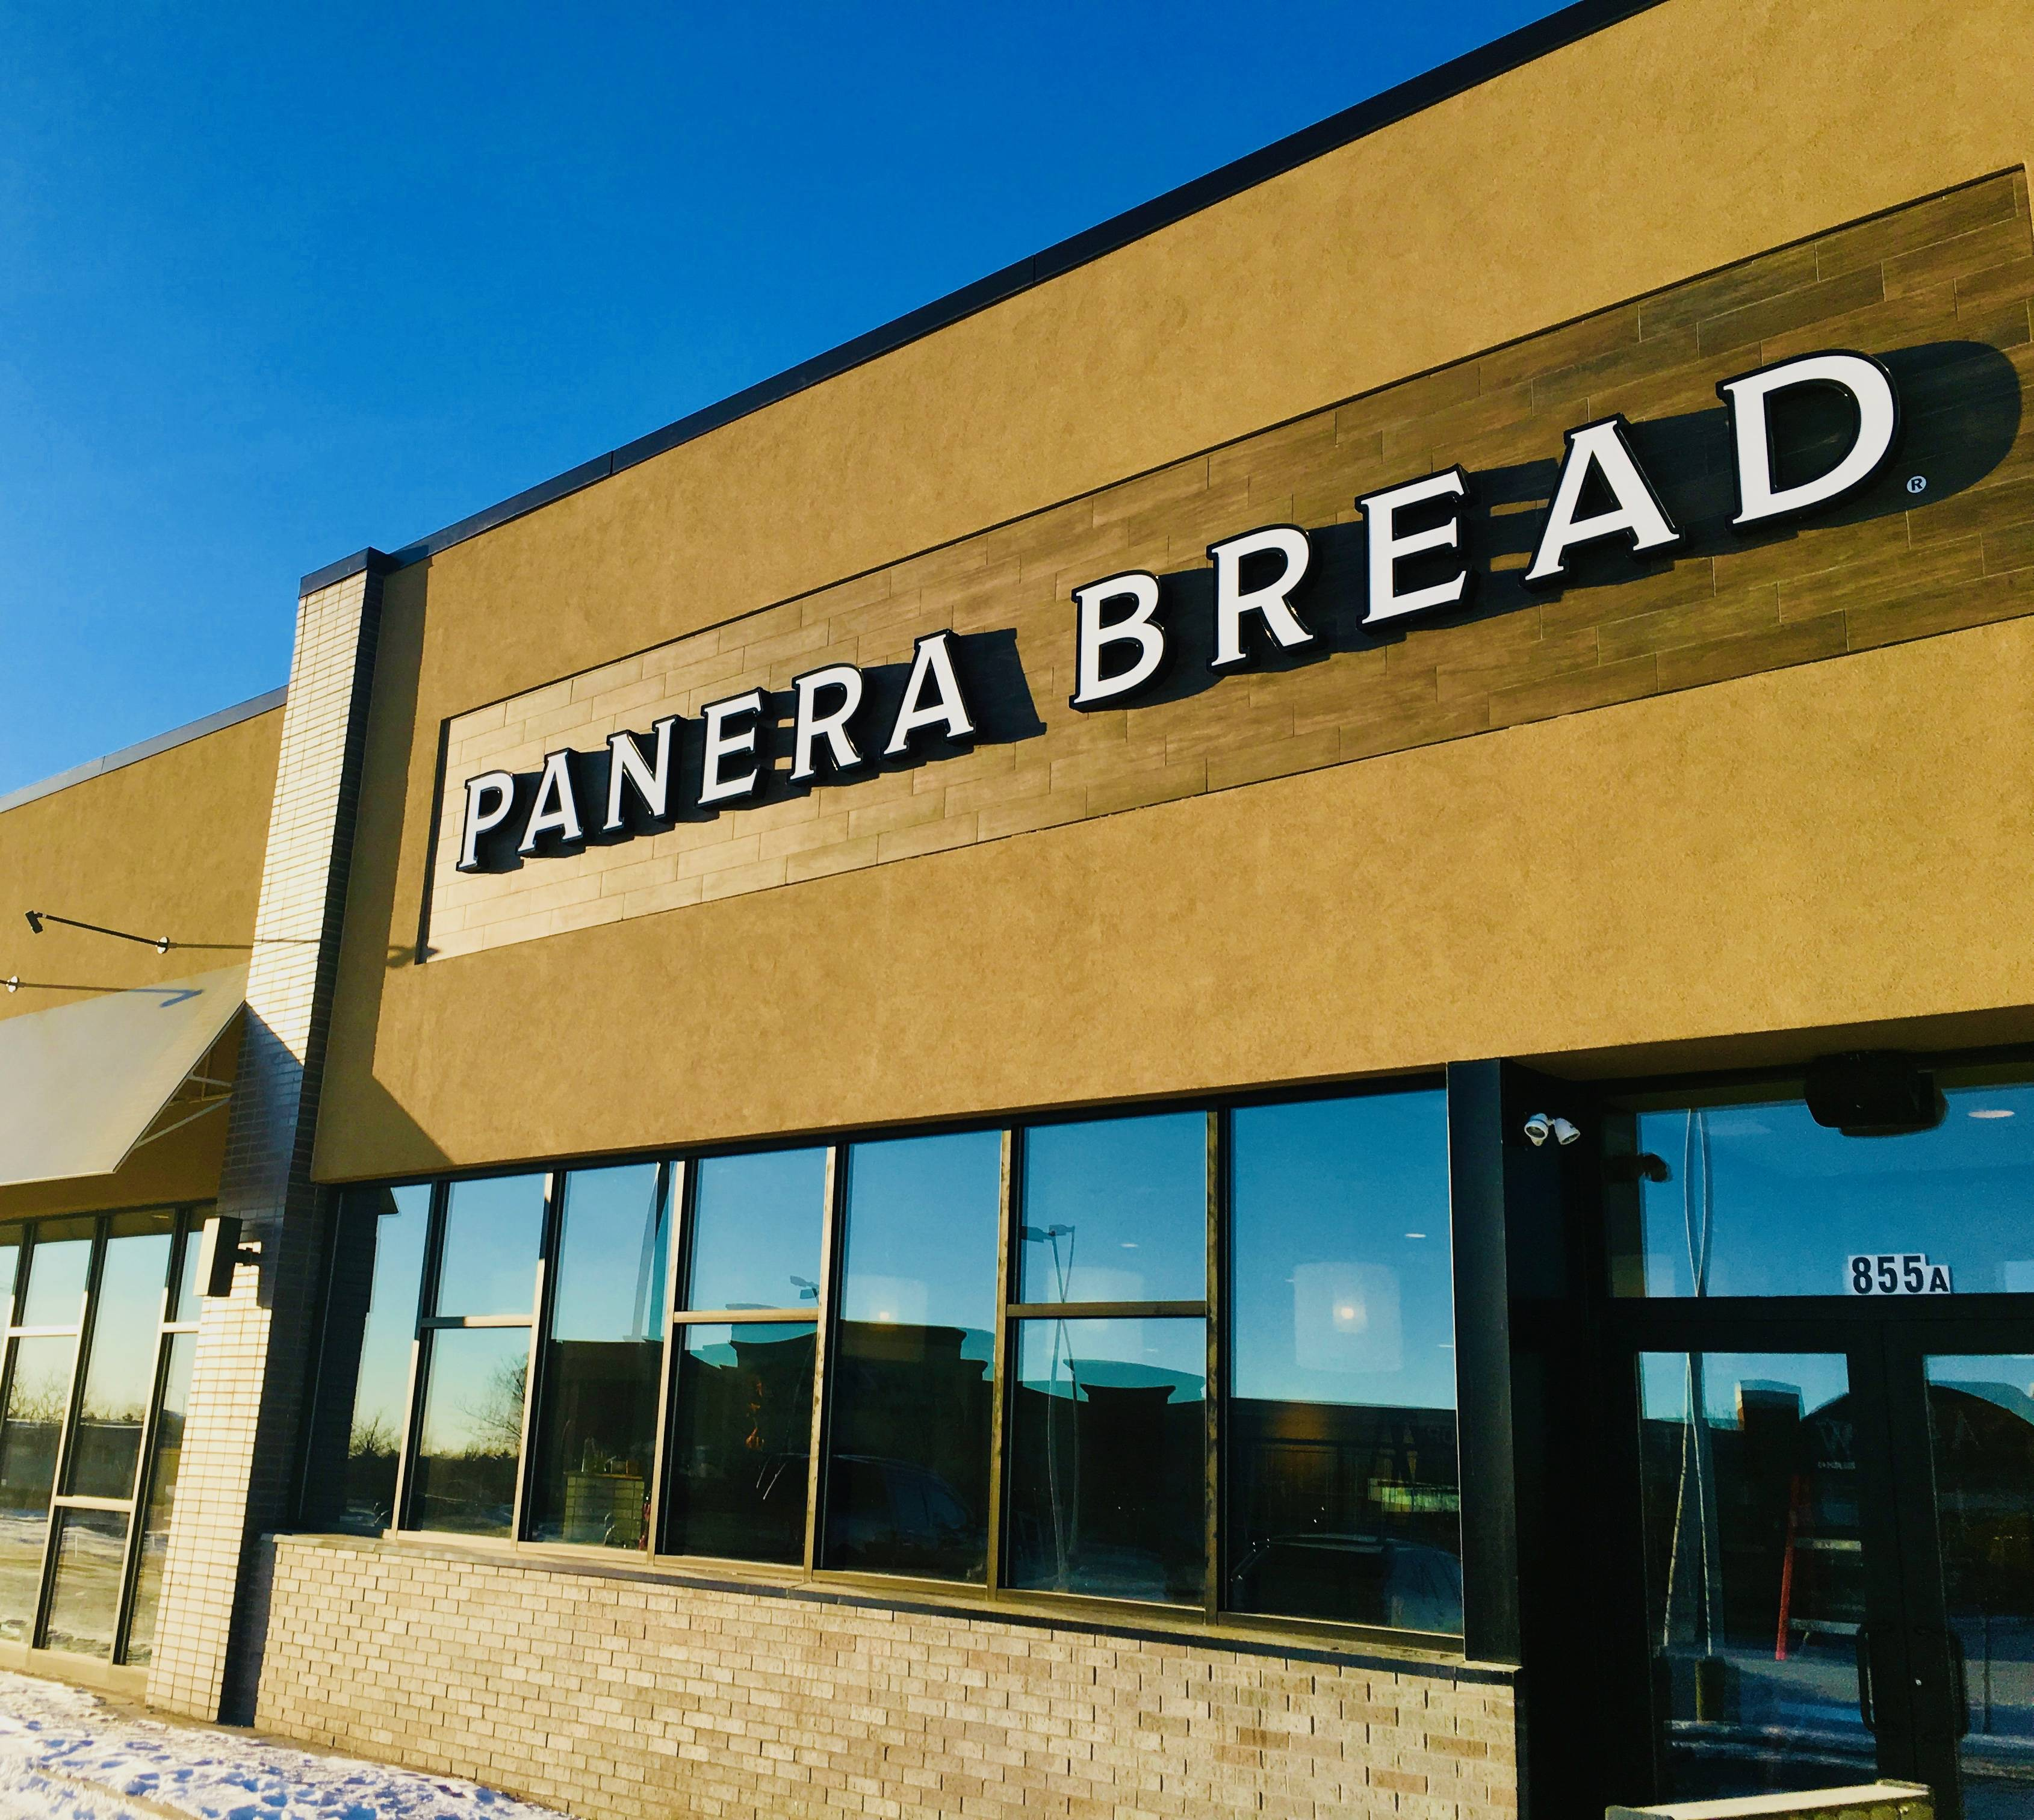 stakeholders and the success of panera bread Panera bread company crafting and executing strategy executive summary the panera bread company is starting 2007 with unfinished goals and missed targets previously set and a review of their strategy is in order to continue their ongoing success.